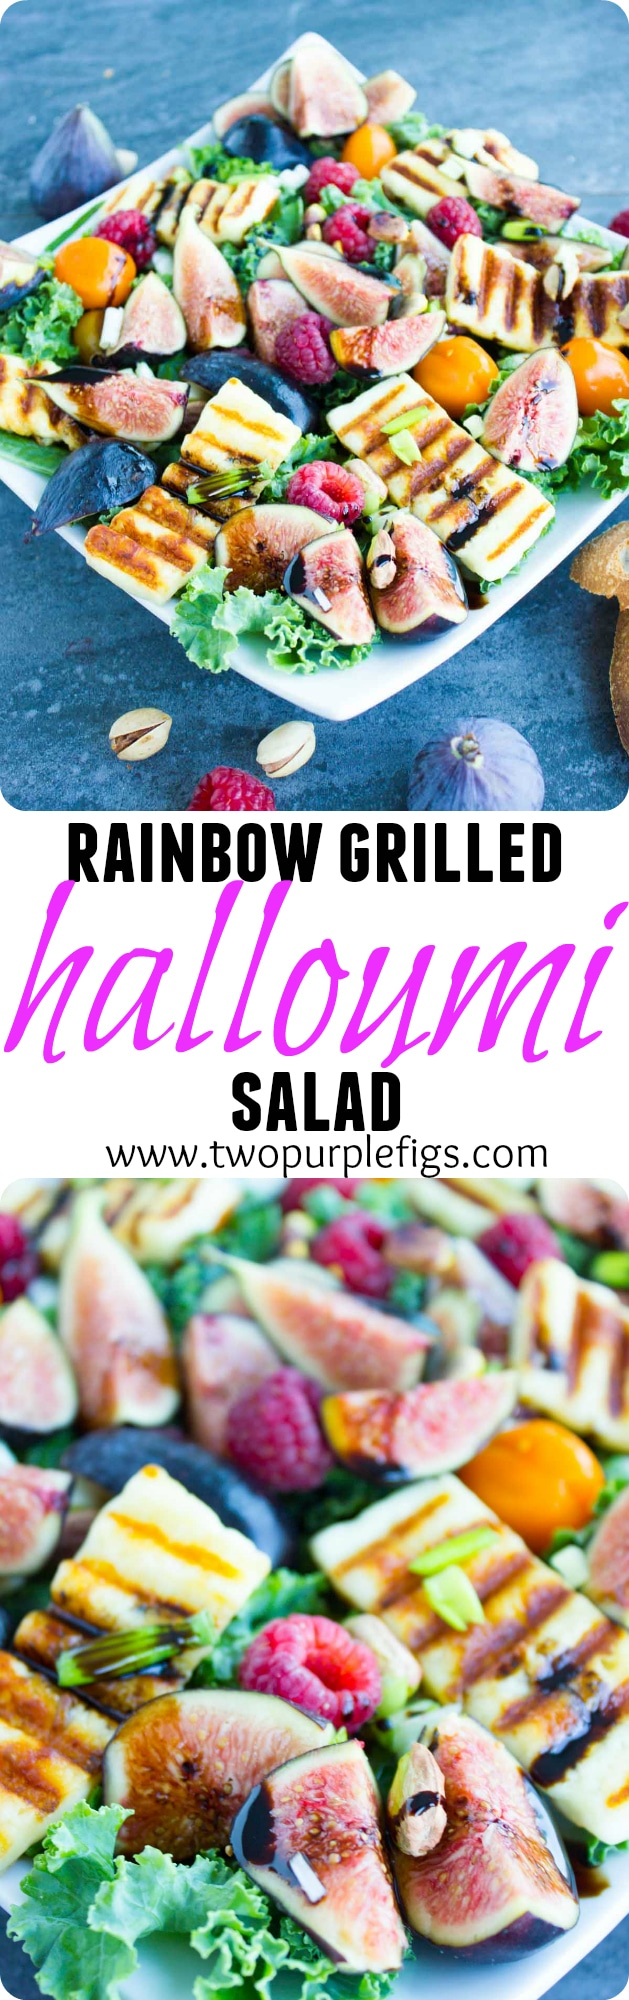 Try this Rainbow Power Grilled Halloumi Salad recipe! Drizzled with fig balsamic reduction this gourmet salad is sophisticated enough to impress, yet simple, fresh and healthy enough for you to whip up and enjoy any day of the week! #halloumirecipes, #saladrecipes, #healthysalad, #summerrecipes